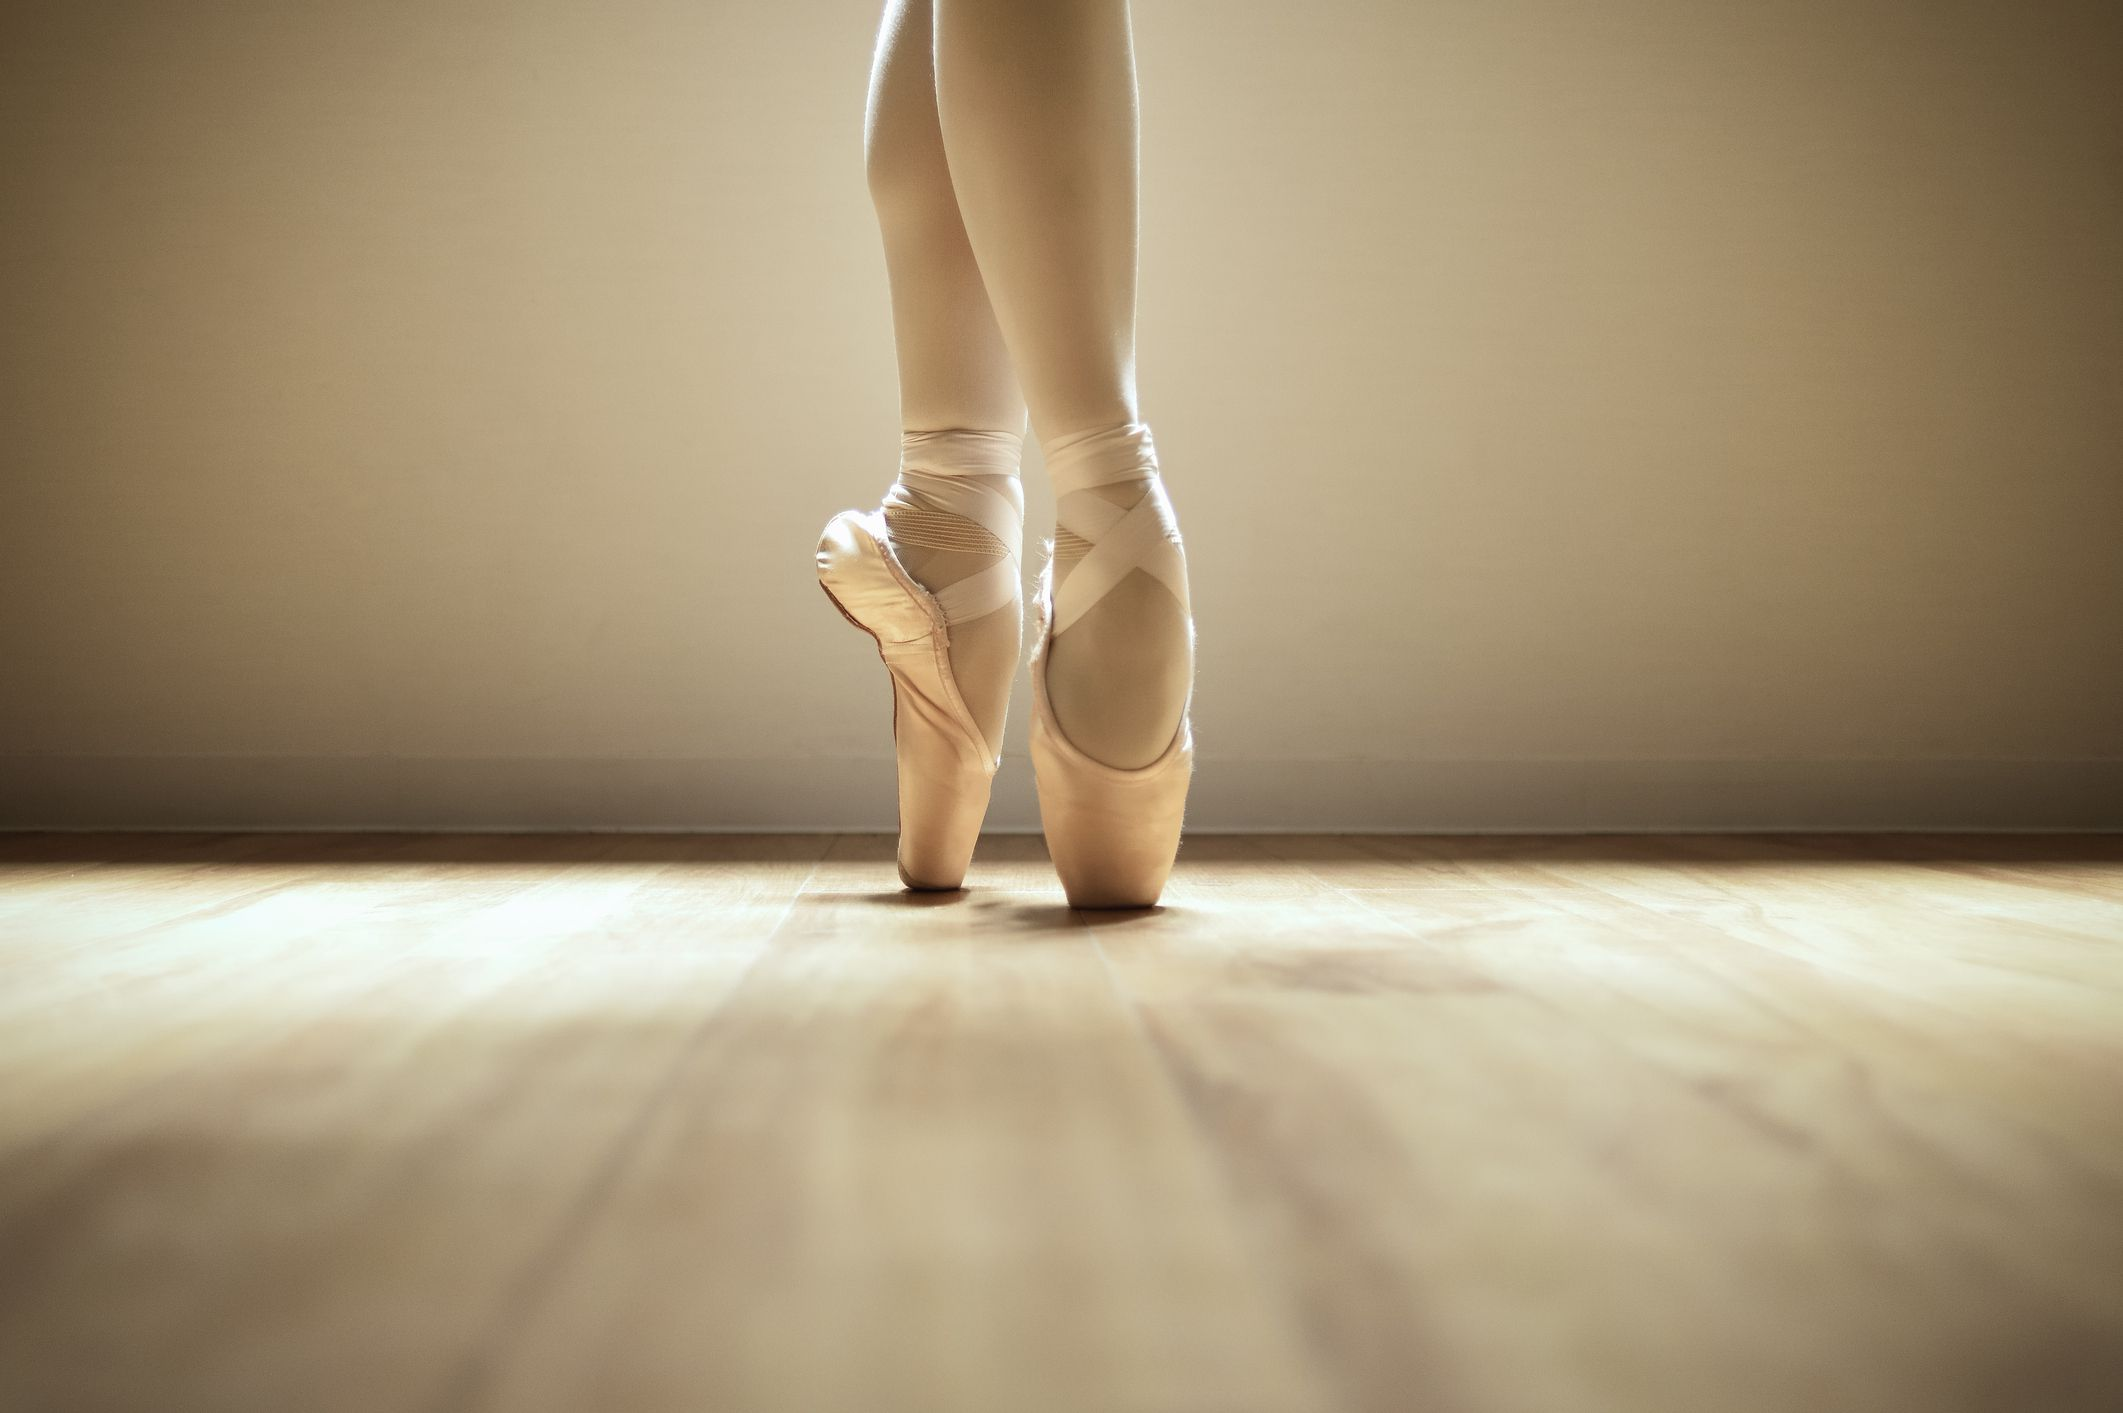 How To Strengthen Your Feet For Pointework In Ballet